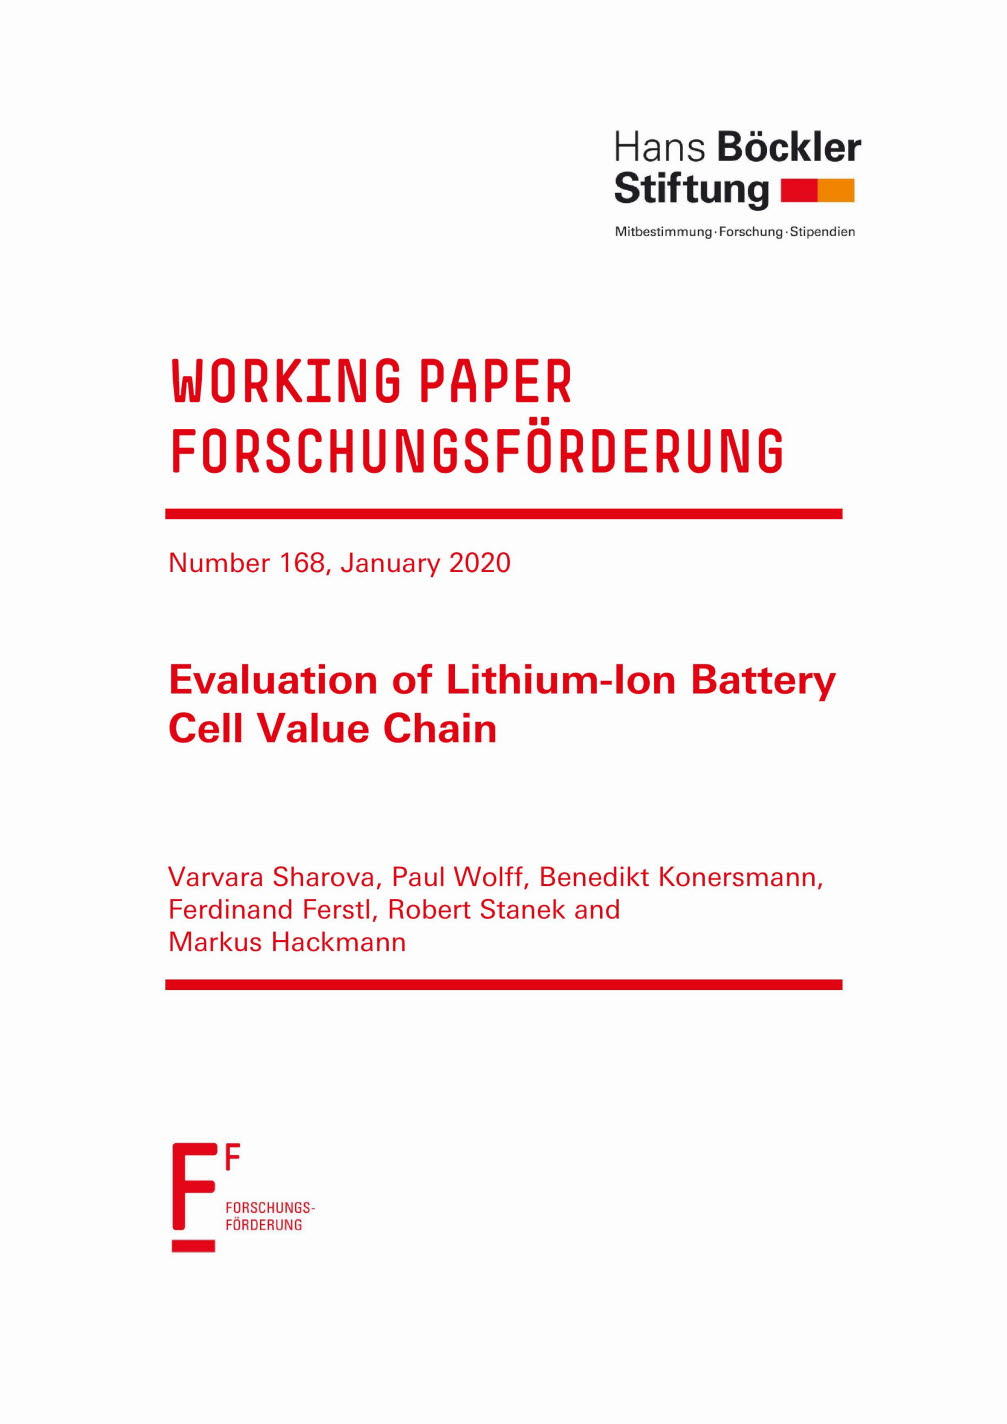 Evaluation of Lithium-ion battery cell value chain